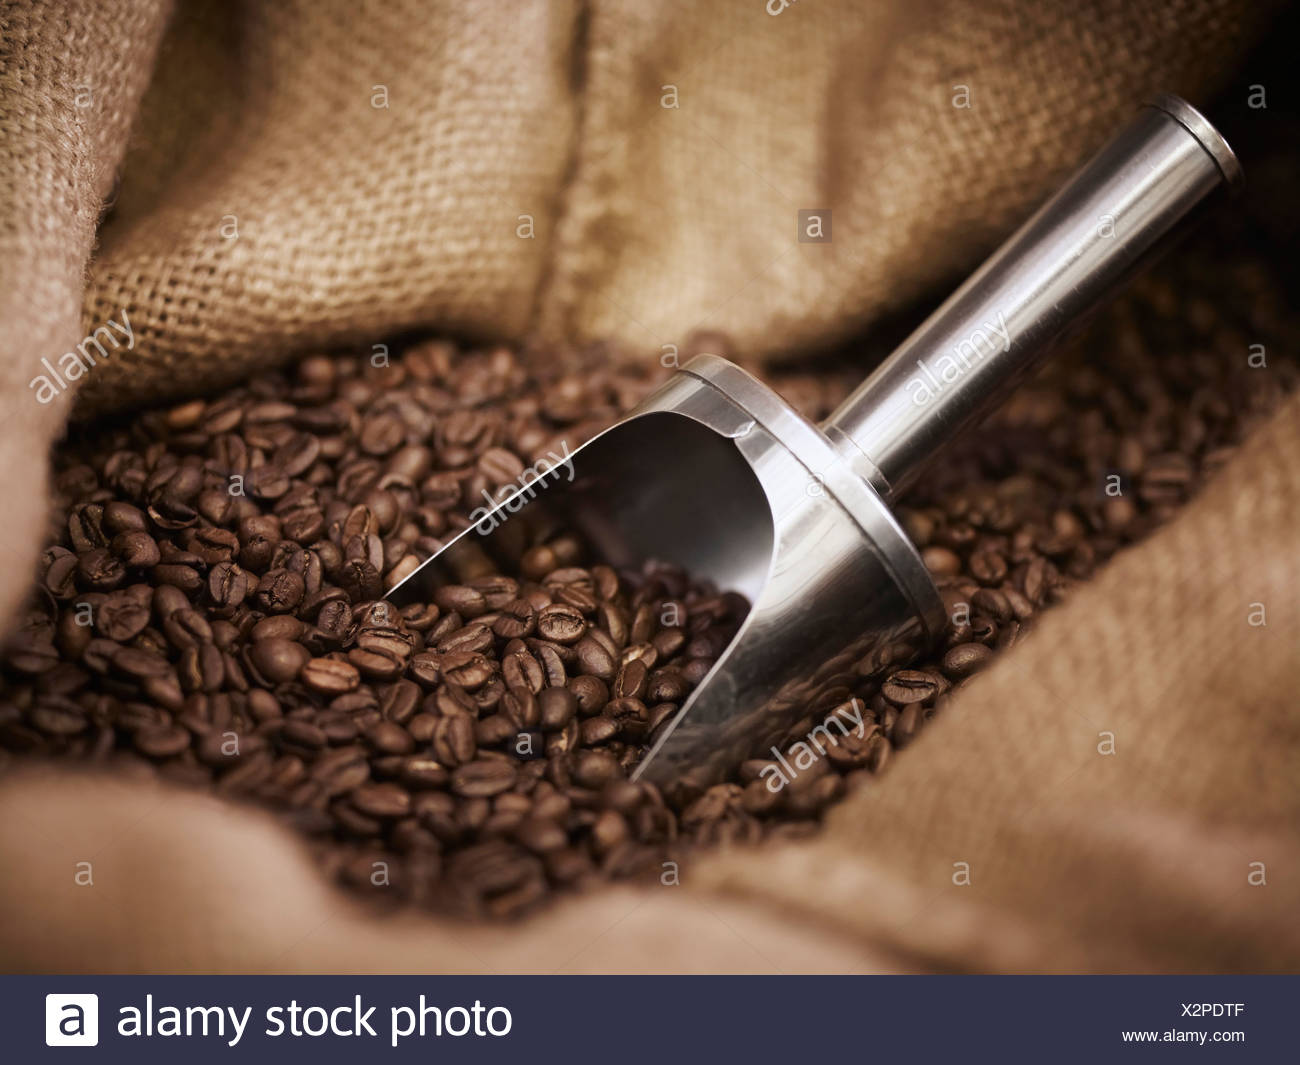 Burlap sack with scoop and coffee beans - Stock Image